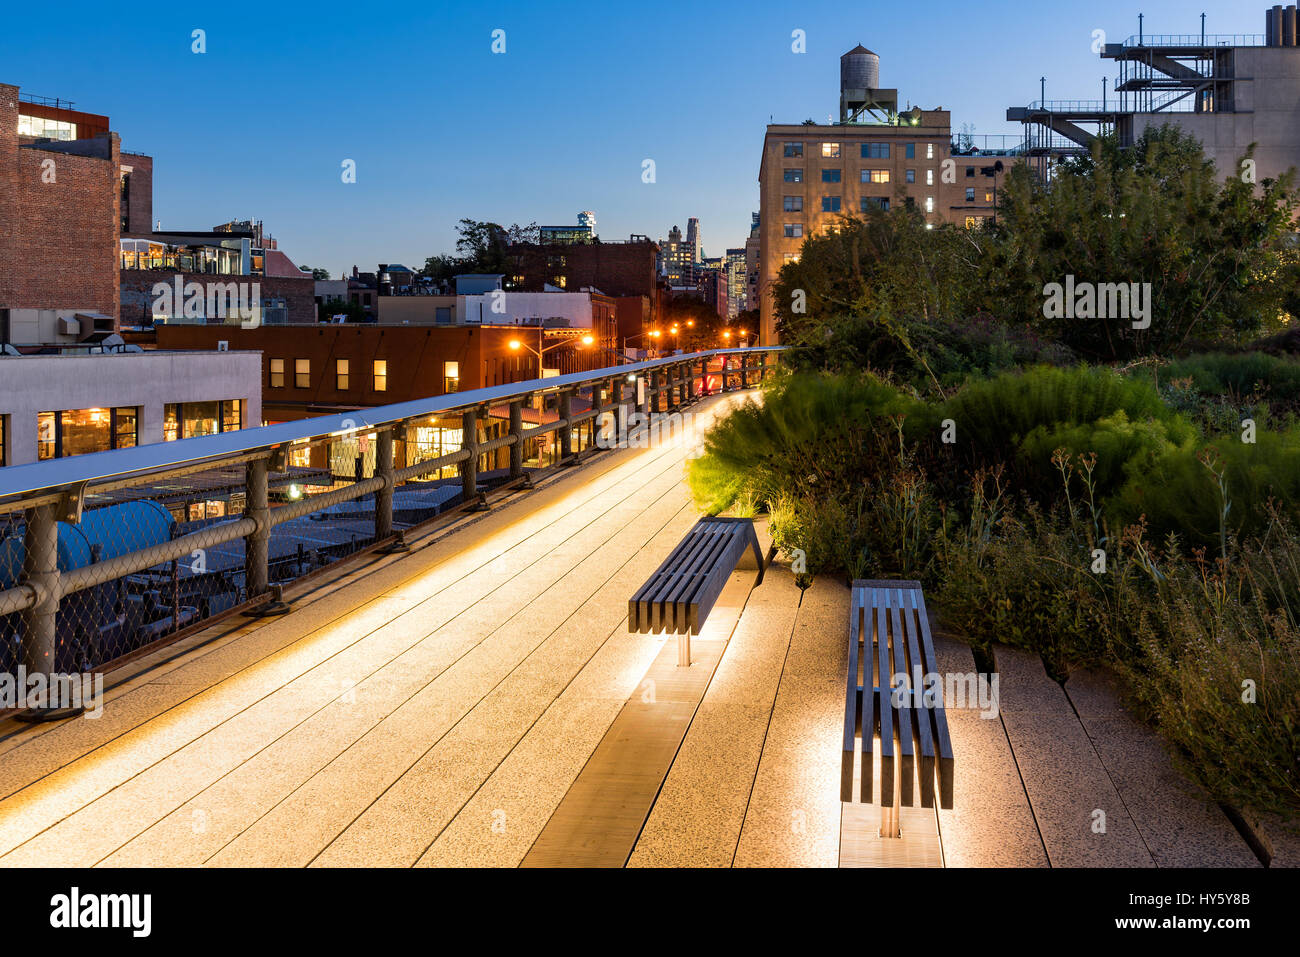 The Highline at twilight, West Village, Manhattan, New York City - Stock Image